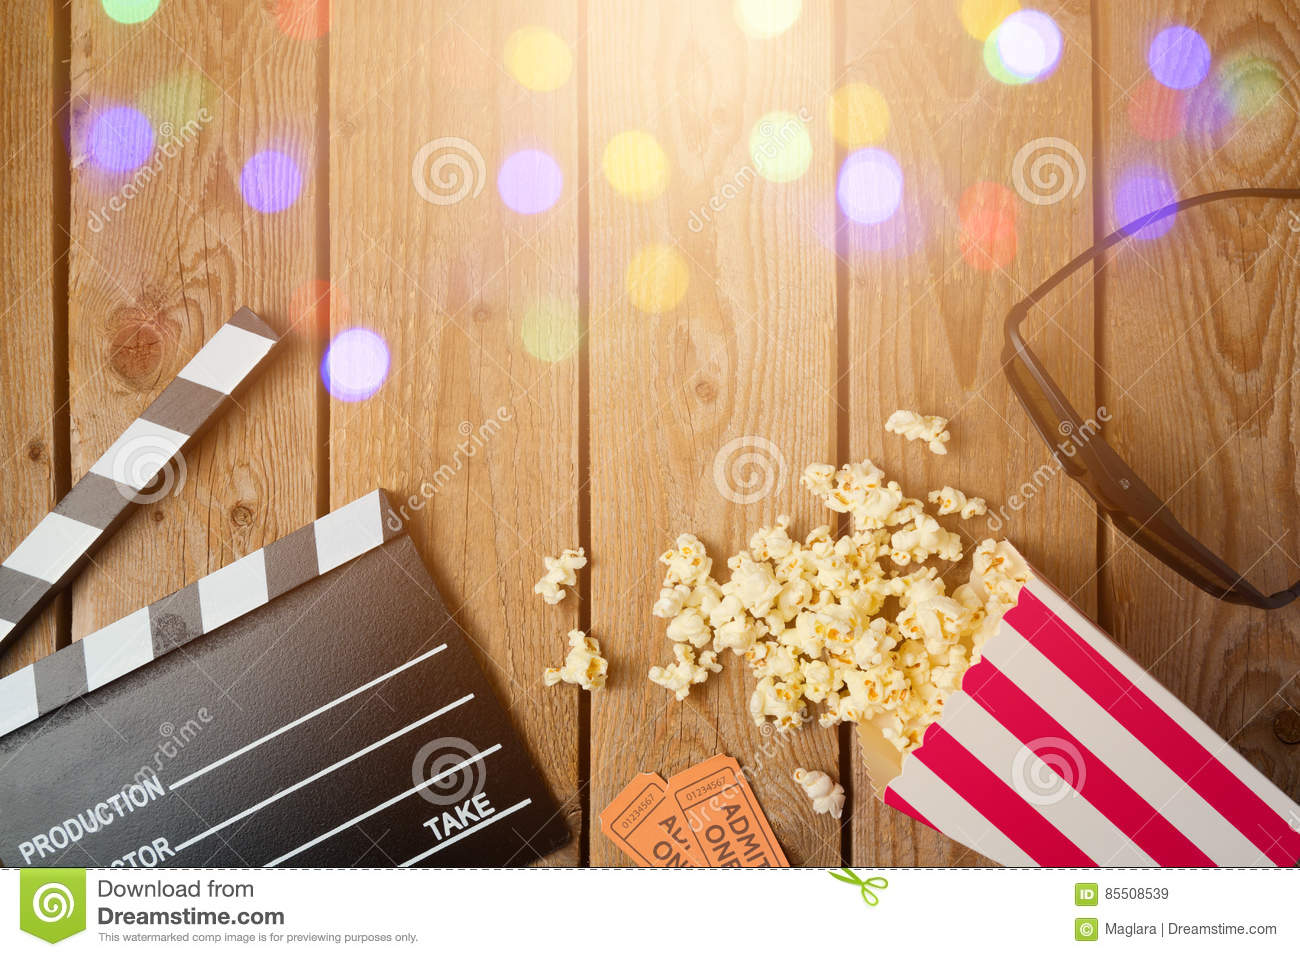 Movie clapper board, 3d glasses and popcorn on wooden background. Cinema concept.